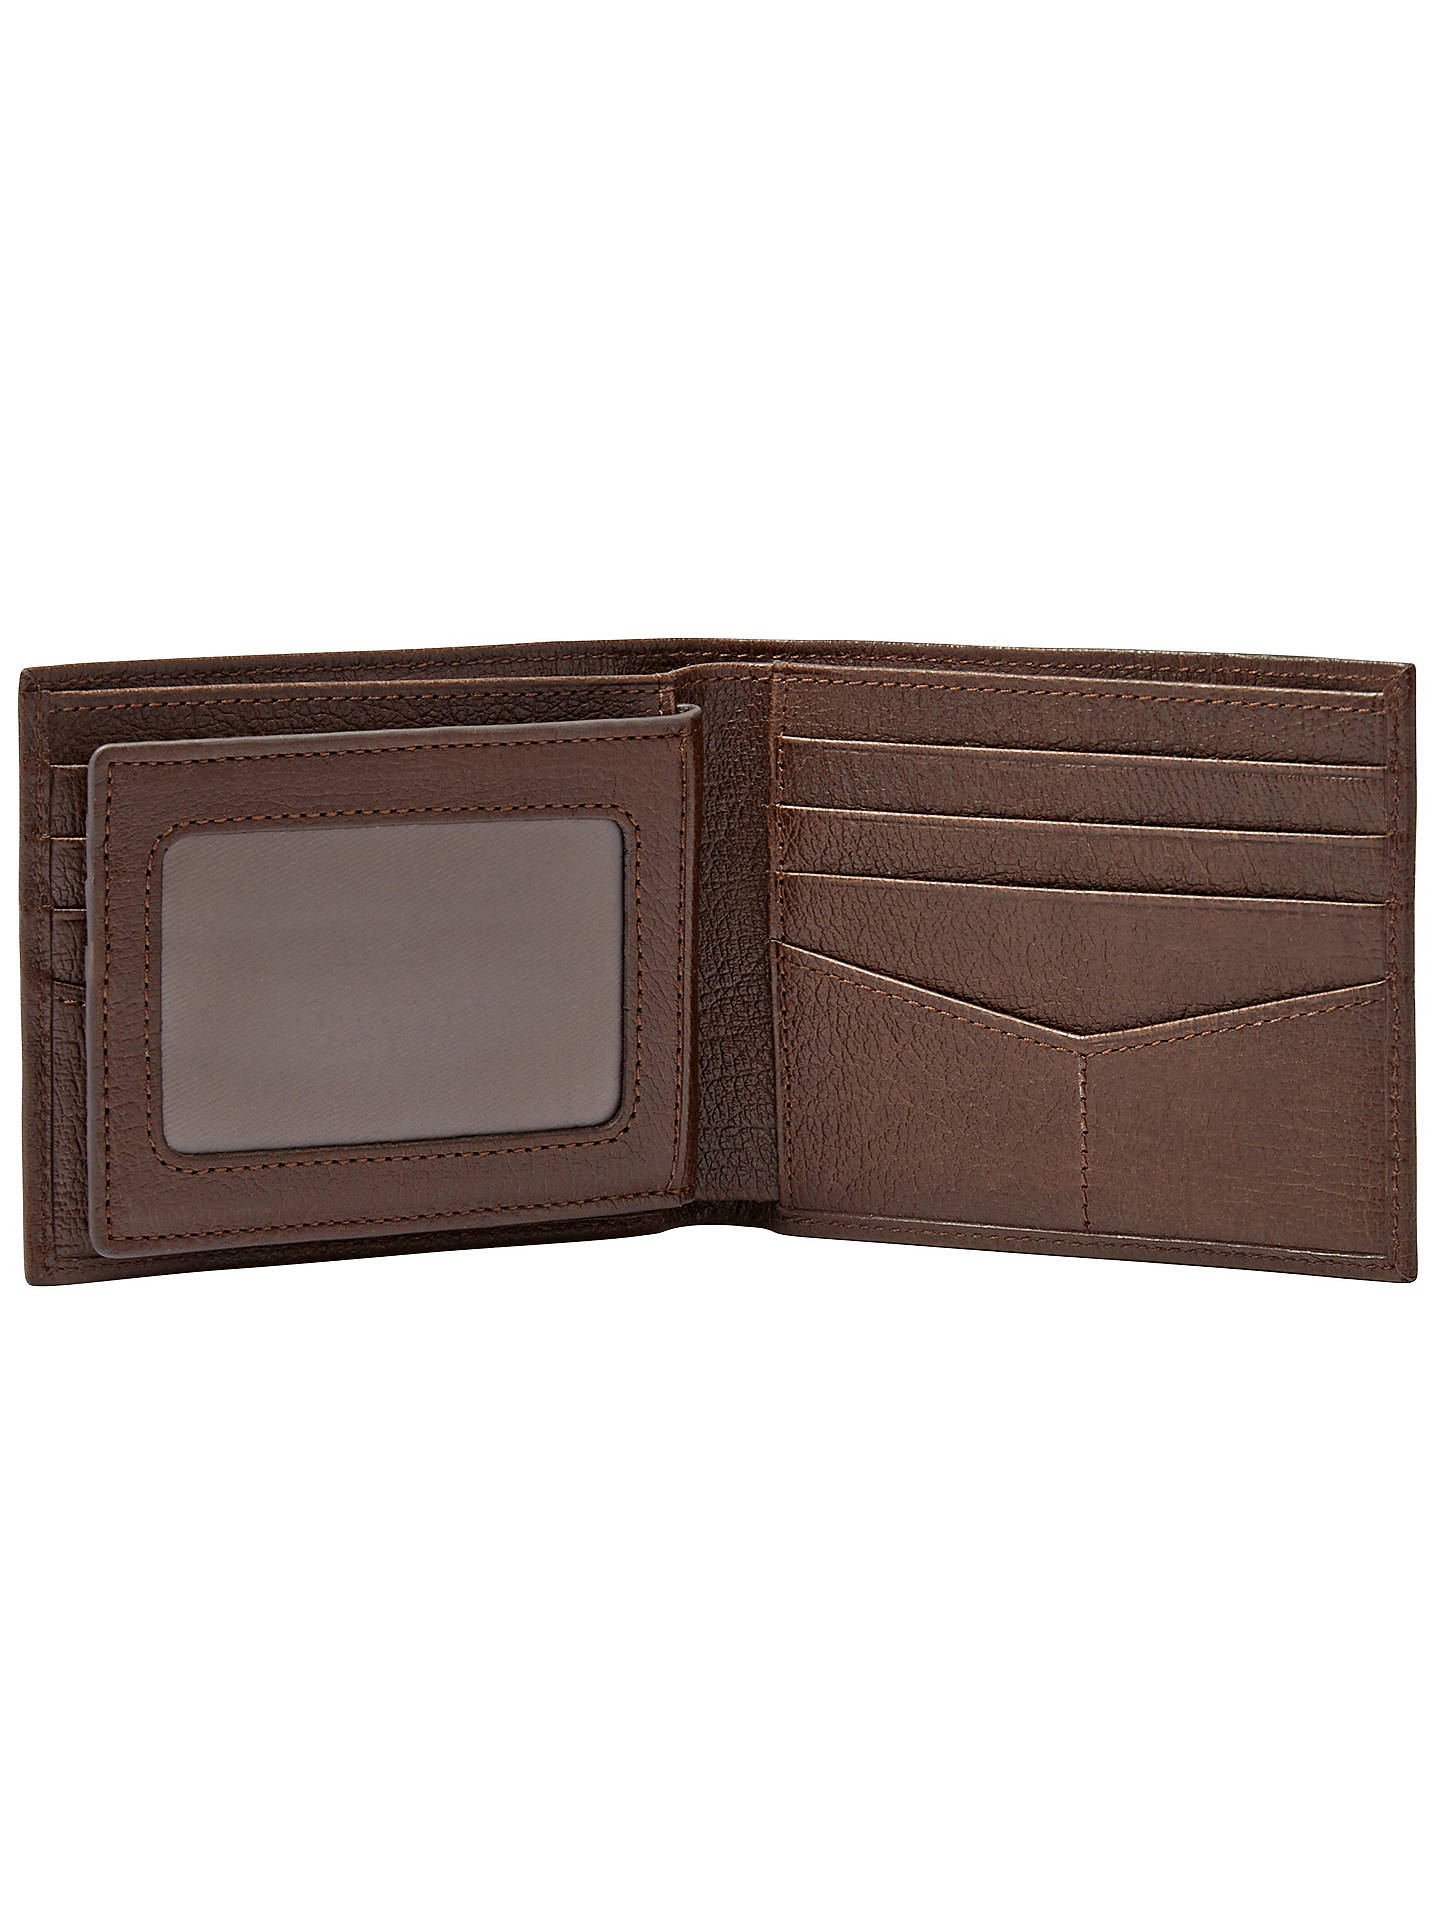 Non-Branded Dark Brown Leather Passcase Wallet w// 6 Credit Card Slot